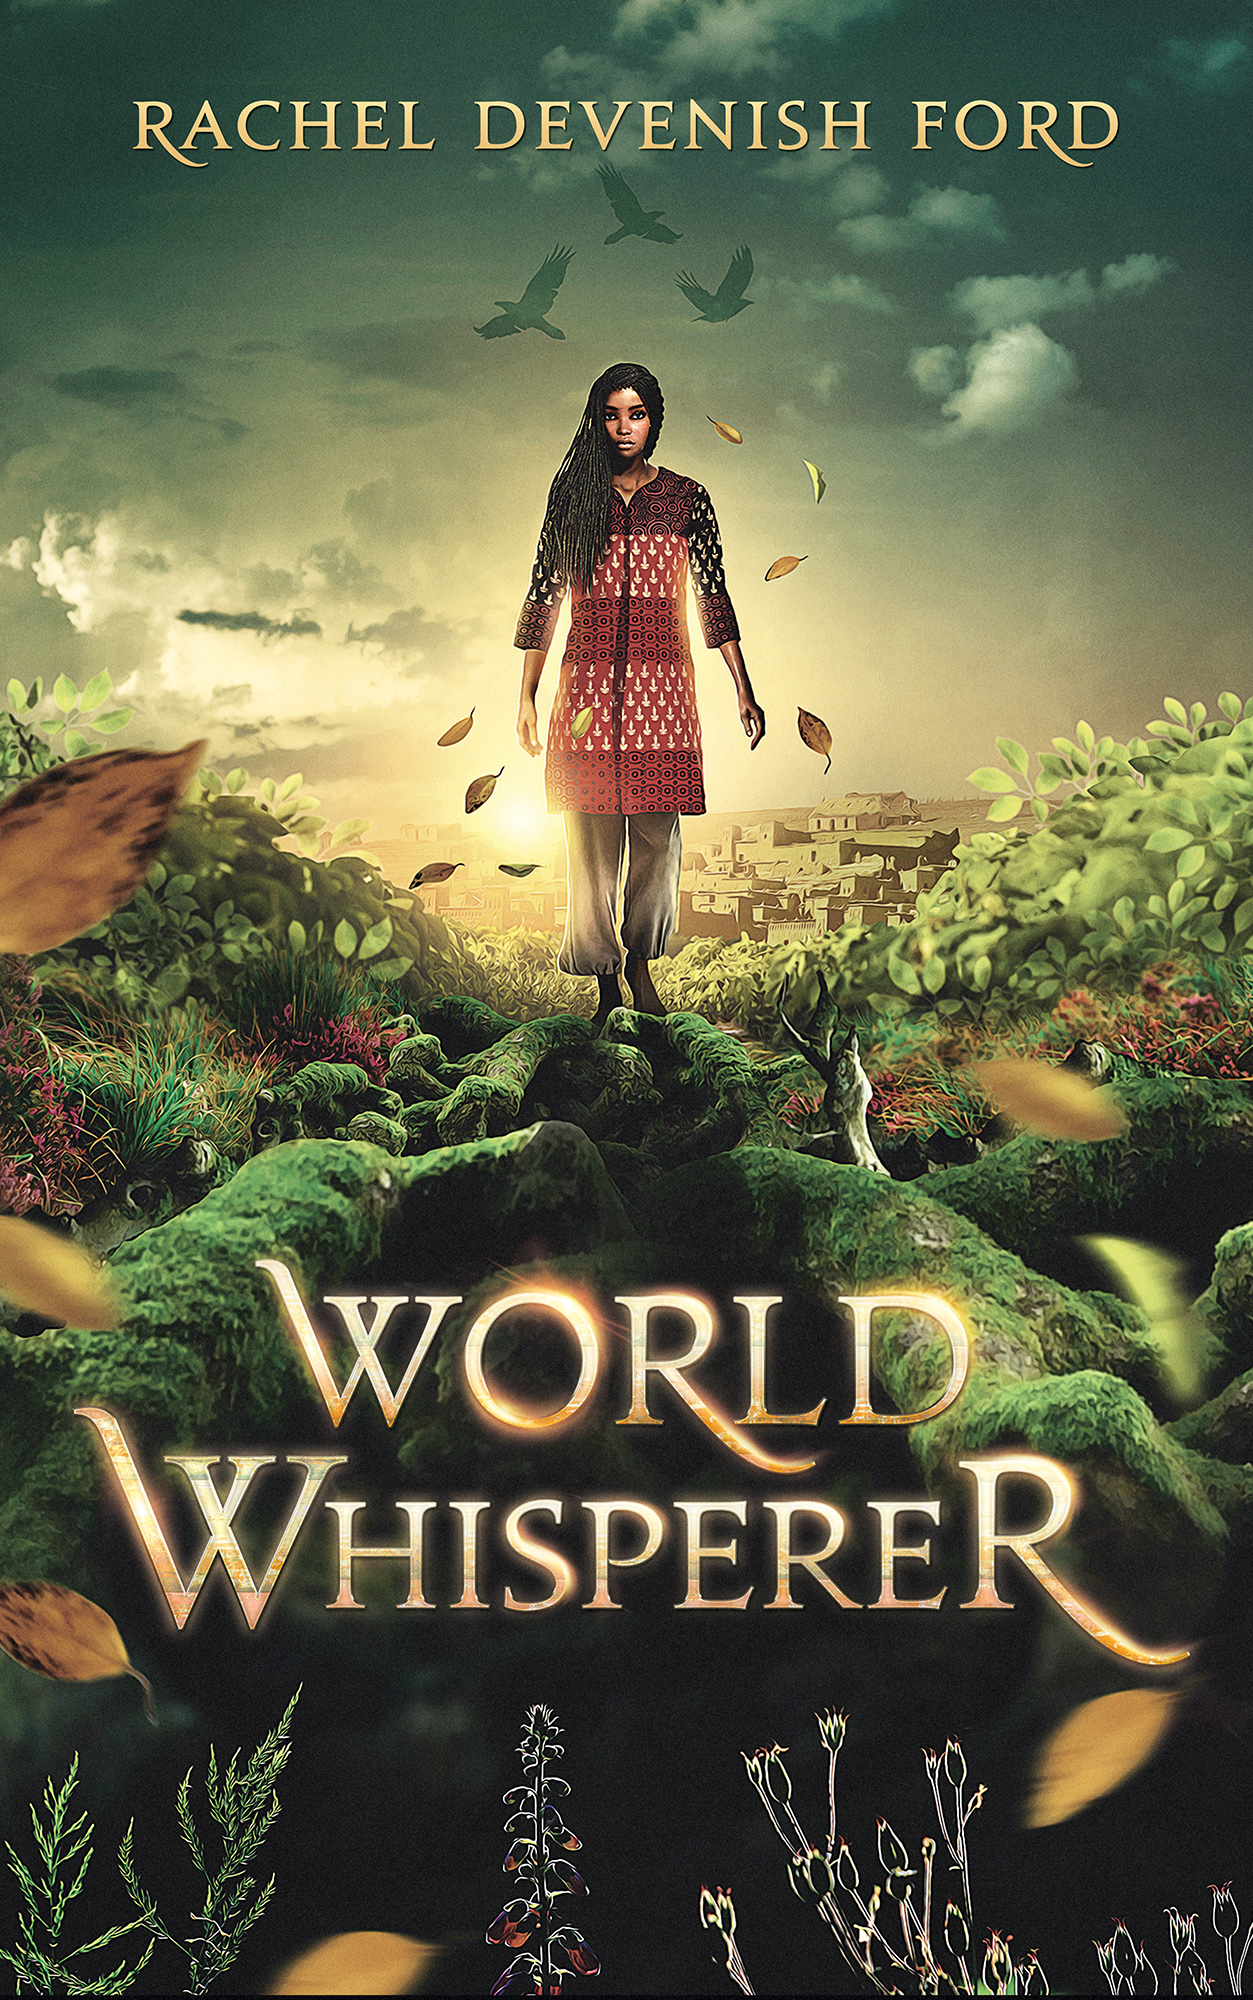 World Whisperer - Ebook SMall.jpg